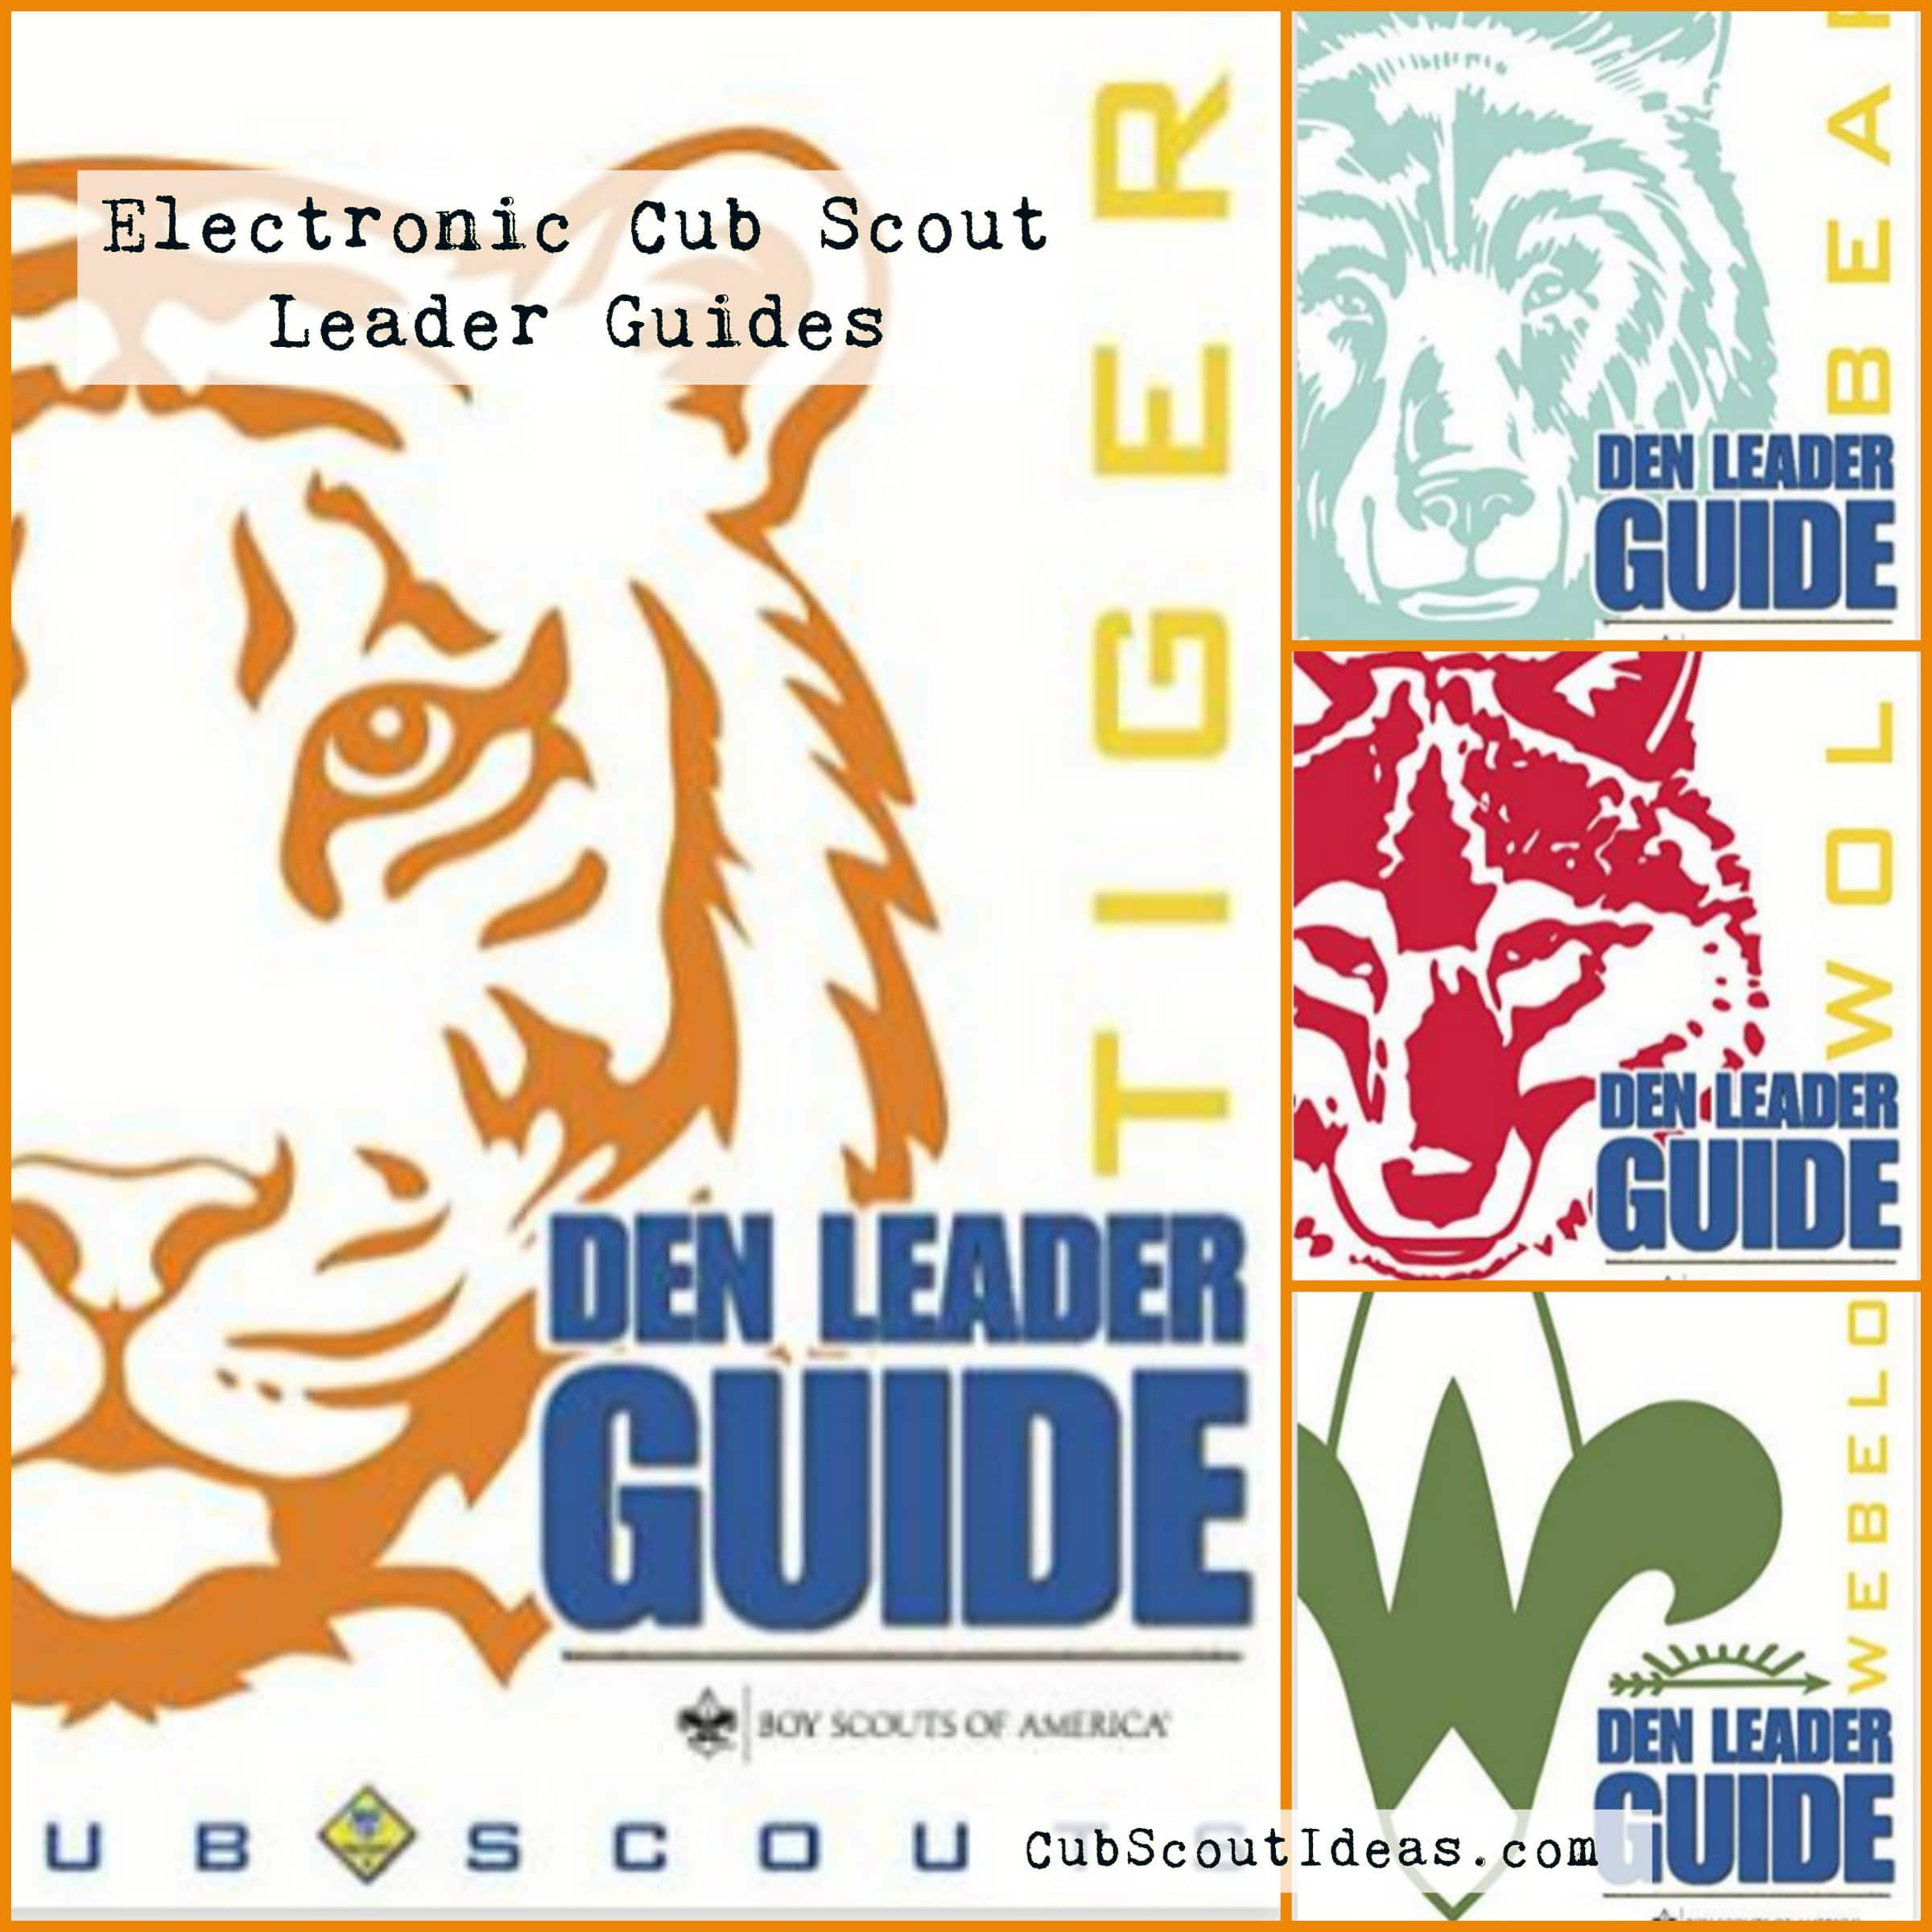 Electronic Cub Scout Den Leader Guides